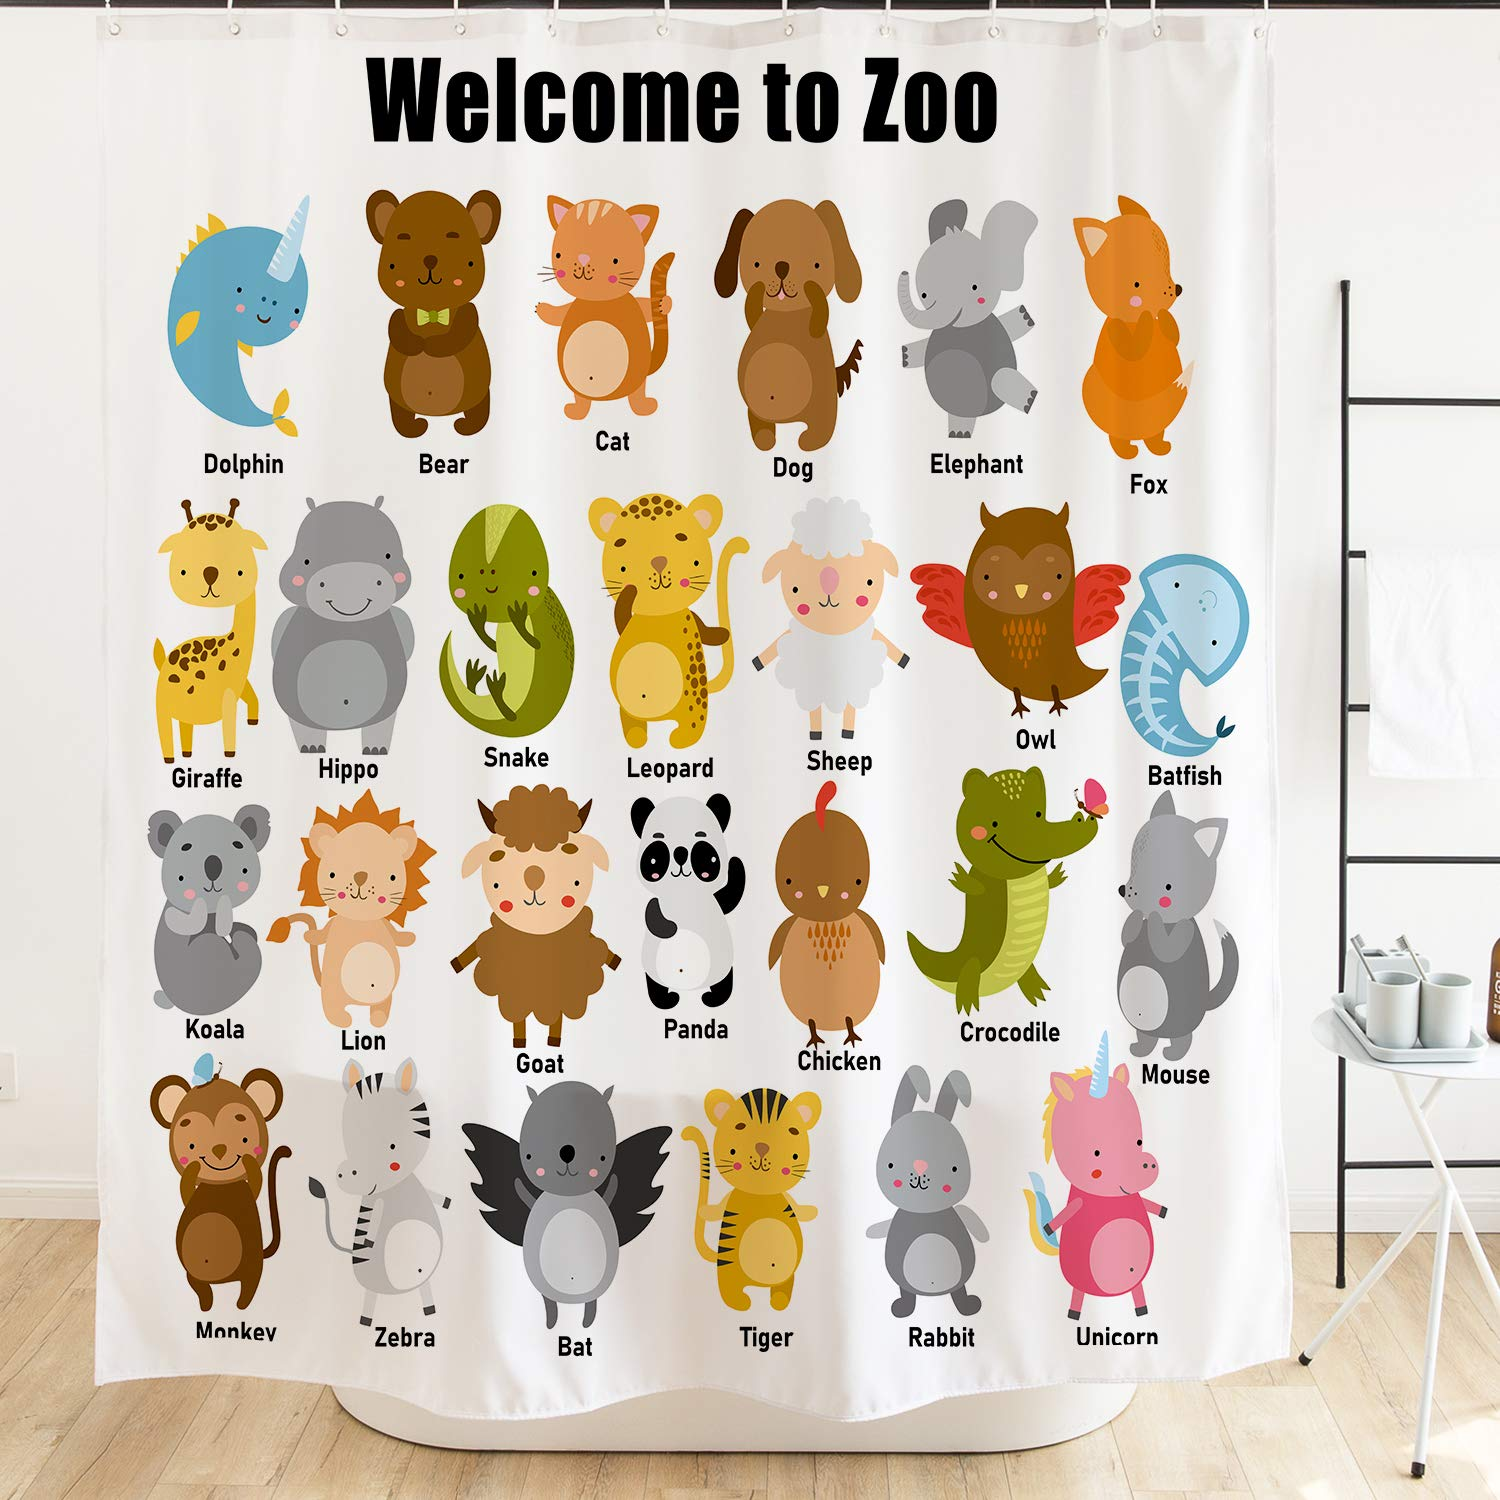 Ofat Home Colorful Cartoon Cute Animal Kids Shower Curtain for Bathroom, 72X72 Extra Long Shower CurtainNo Liner Needed (Welcome to Zoo)